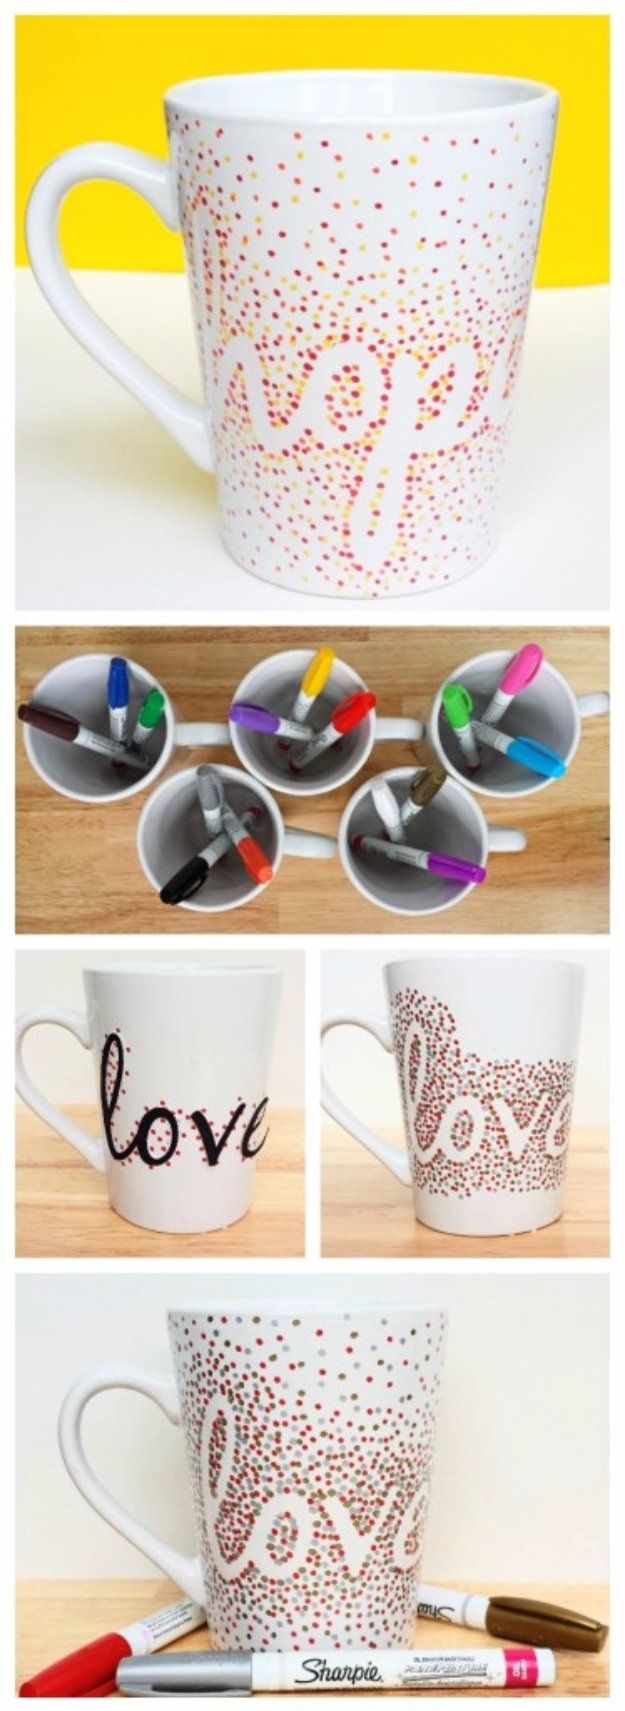 25+ best ideas about Easy crafts on Pinterest | Easy diy ...